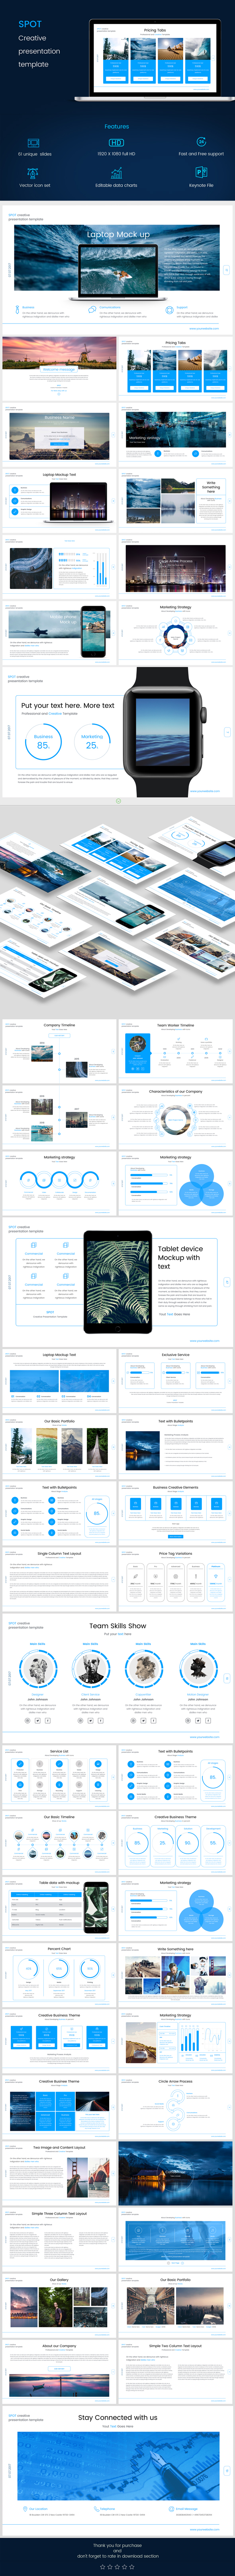 GraphicRiver Spot PowerPoint 20622576